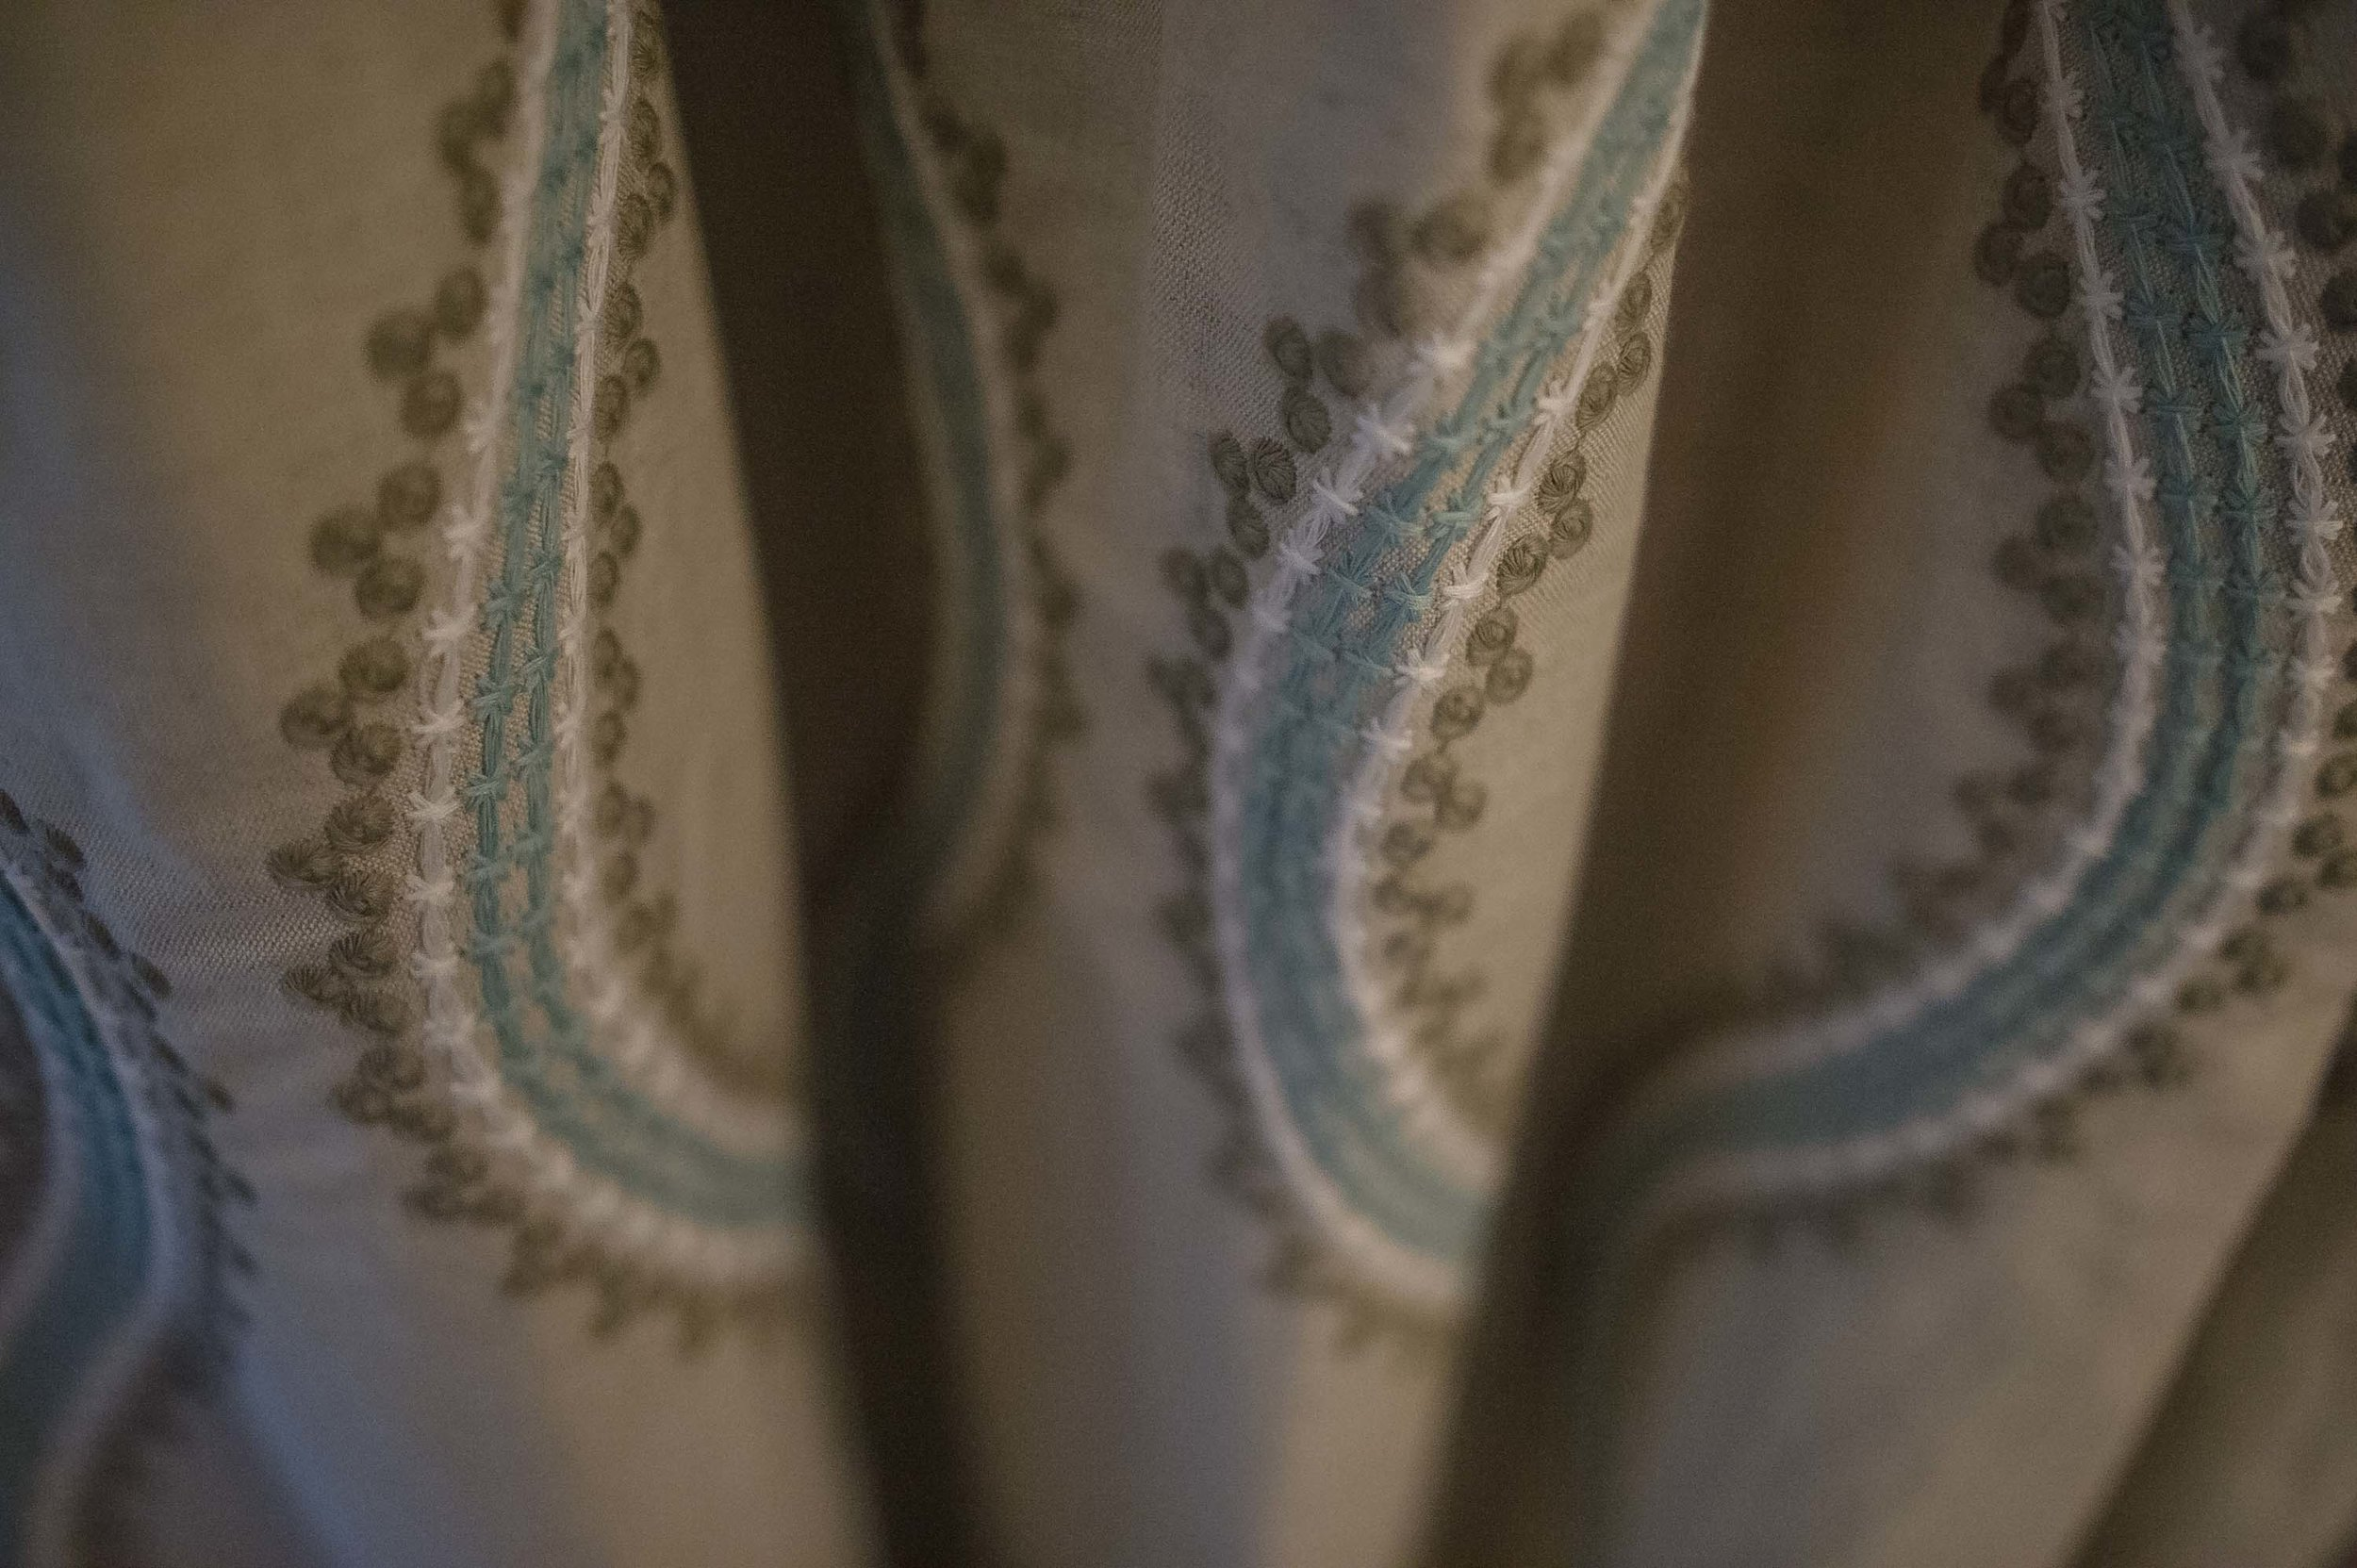 Custom Thibaut Window Treatments with Blue and Tan Accents